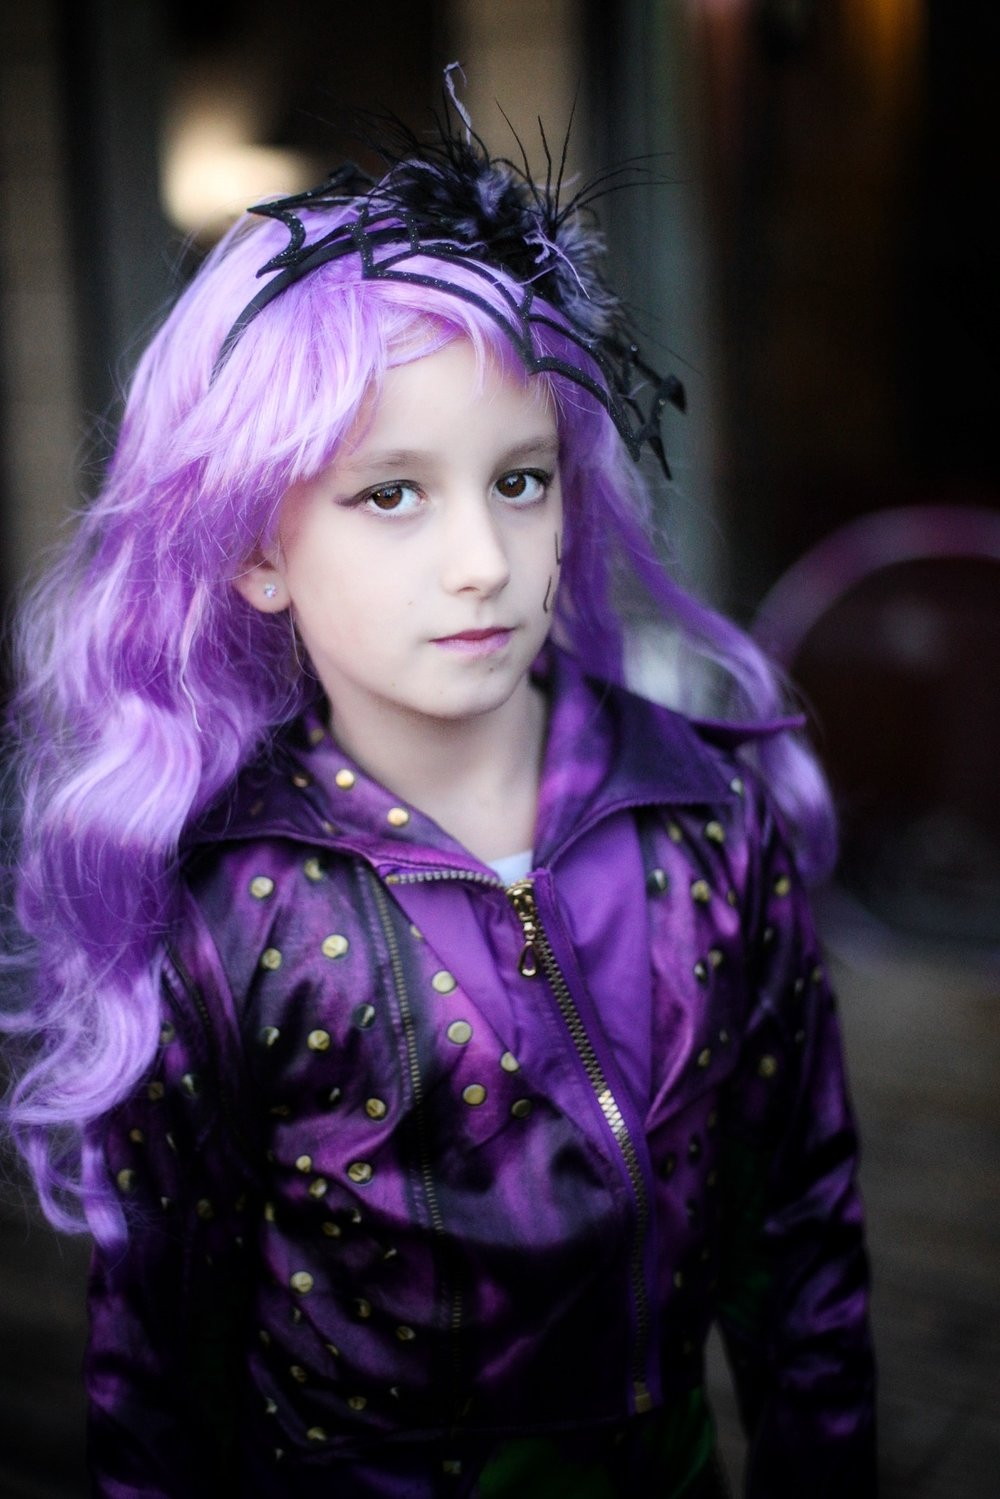 My gorgeous girl as Mal from The Descendants. How is she so grown up already?!